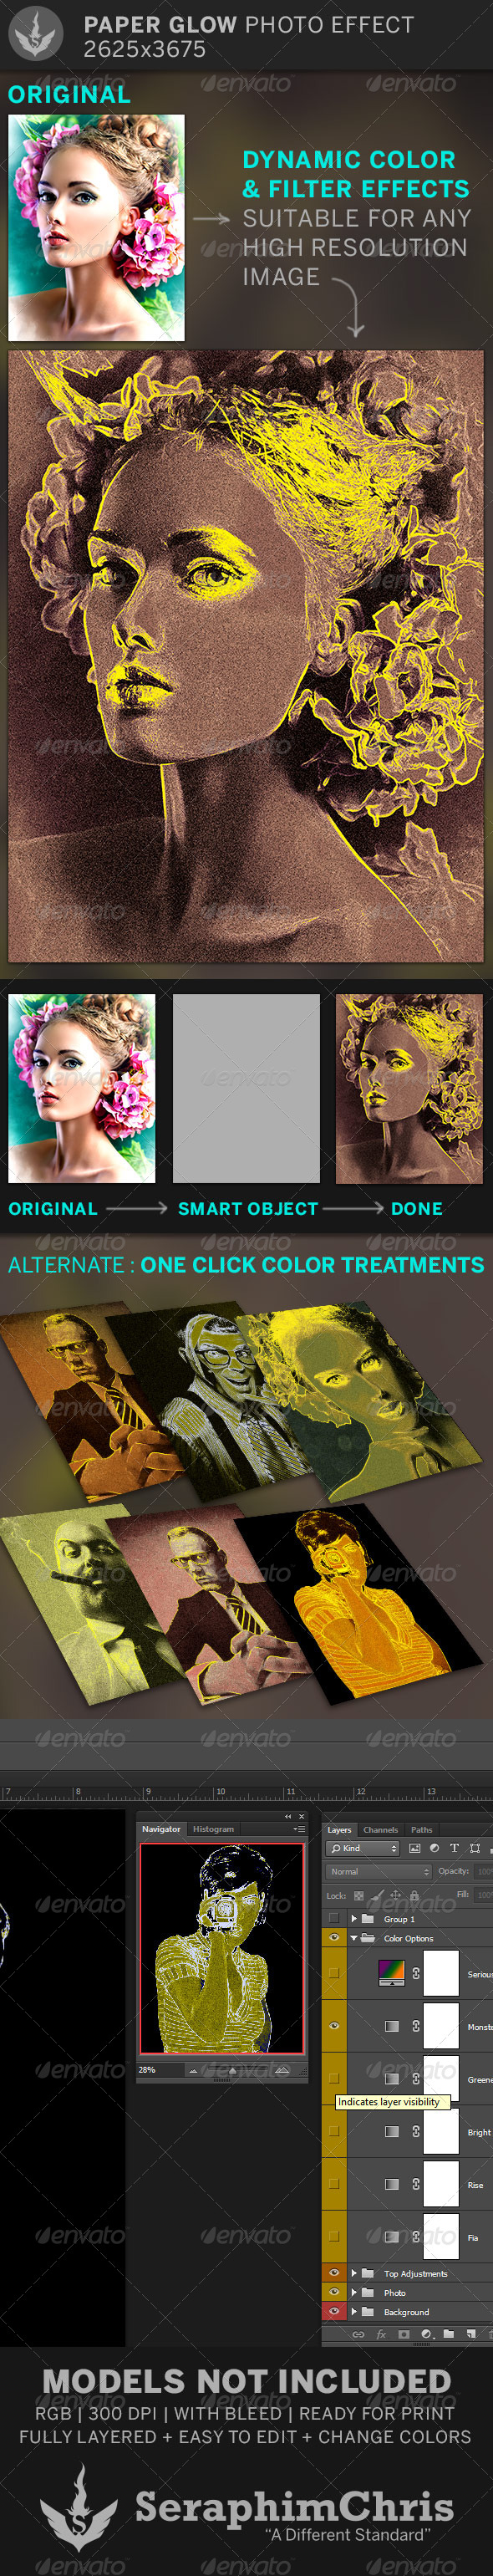 Paper Glow Photo Effect Template - Artistic Photo Templates